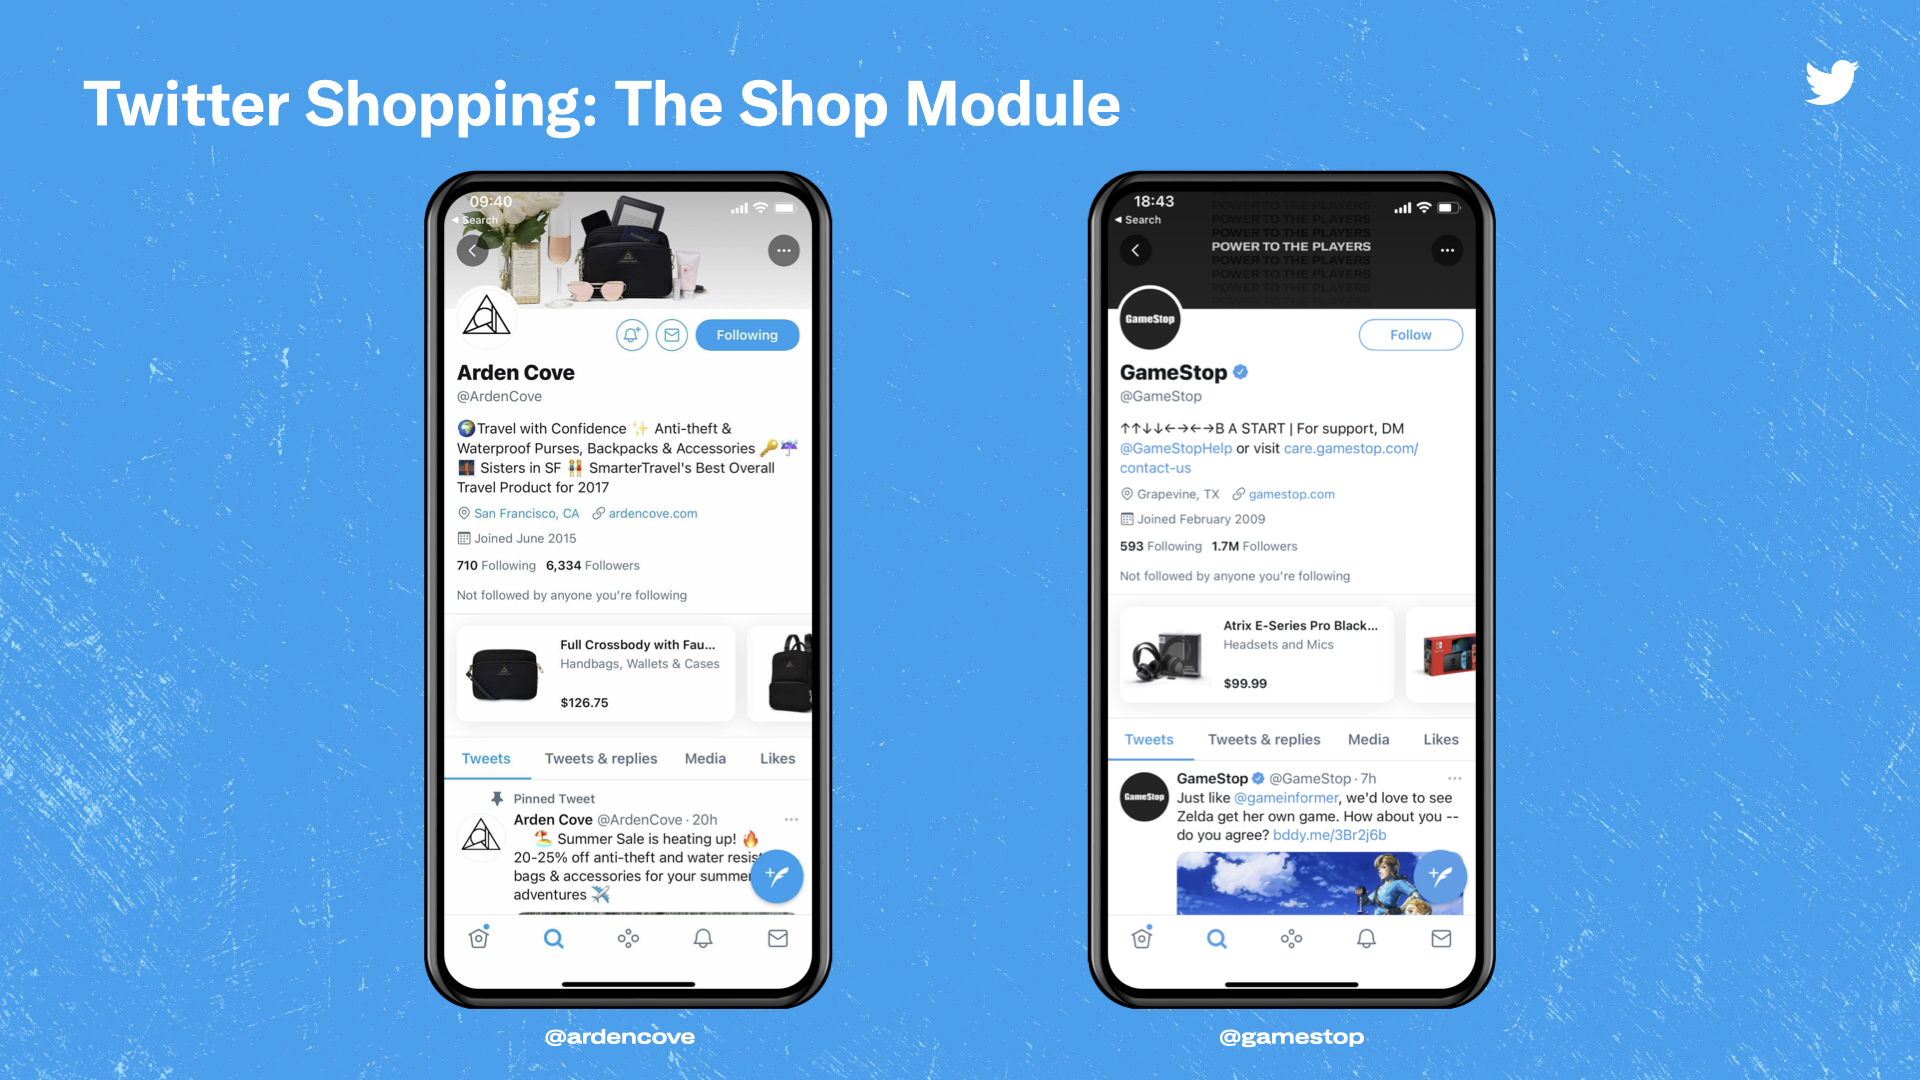 A look at Twitter's new Shop Module